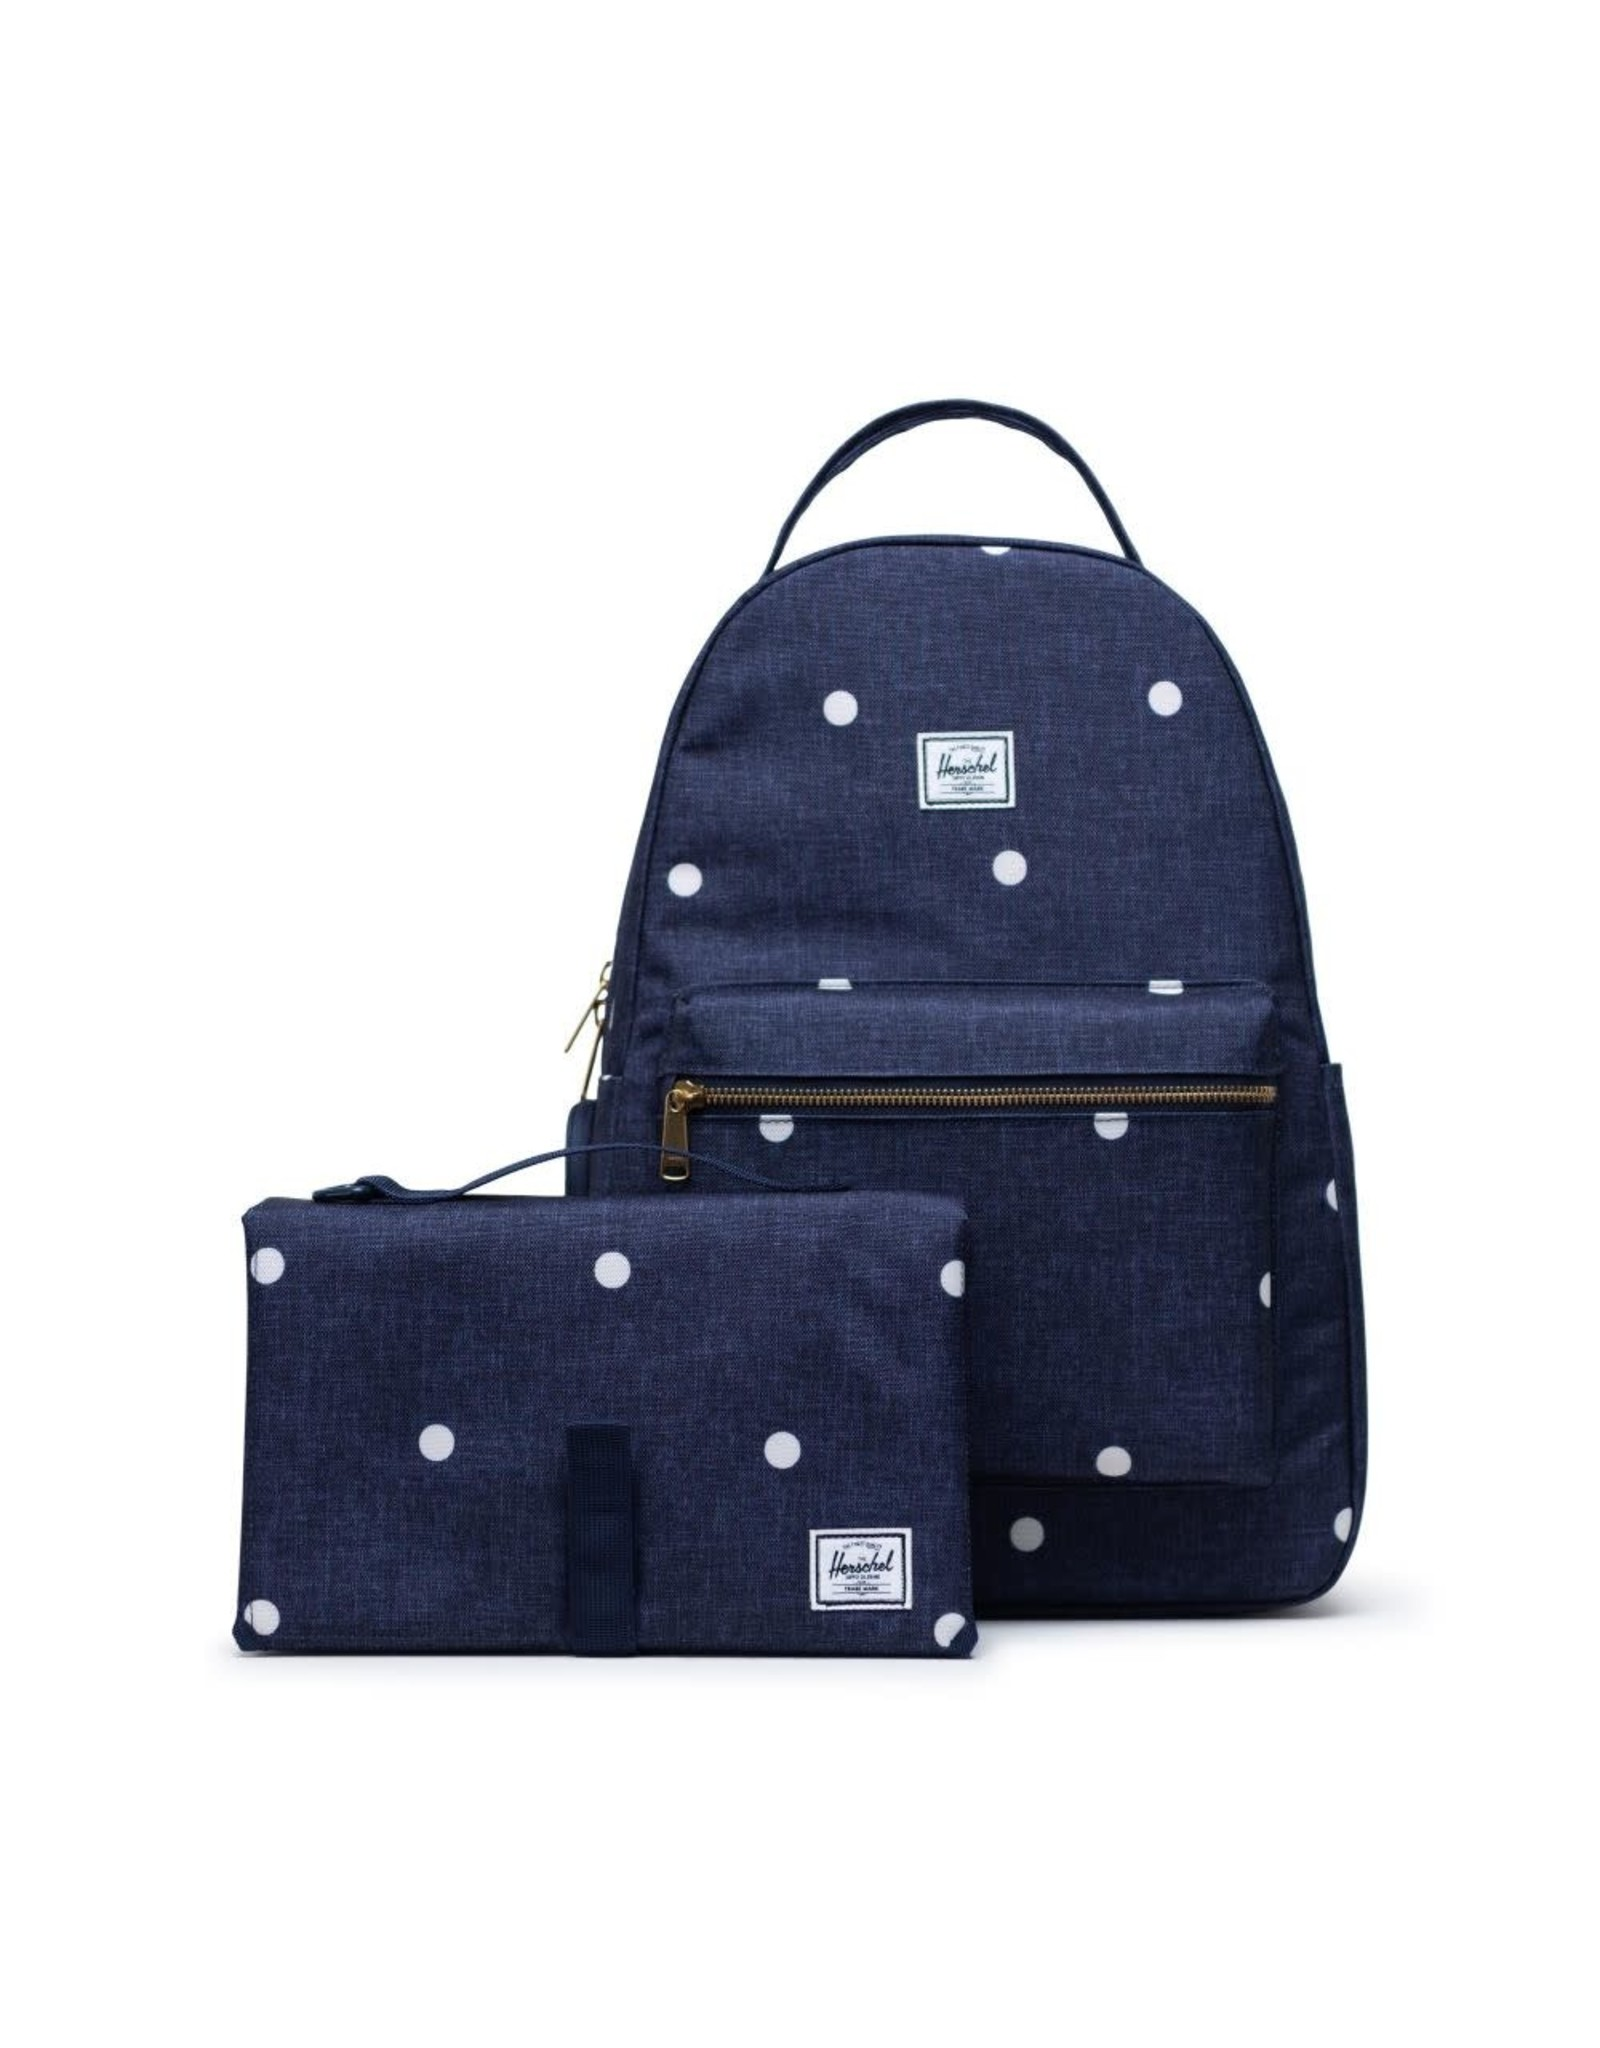 Herschel Supply Herschel Nova Sprout Backpack, Polka Dot Crosshatch Peacoat